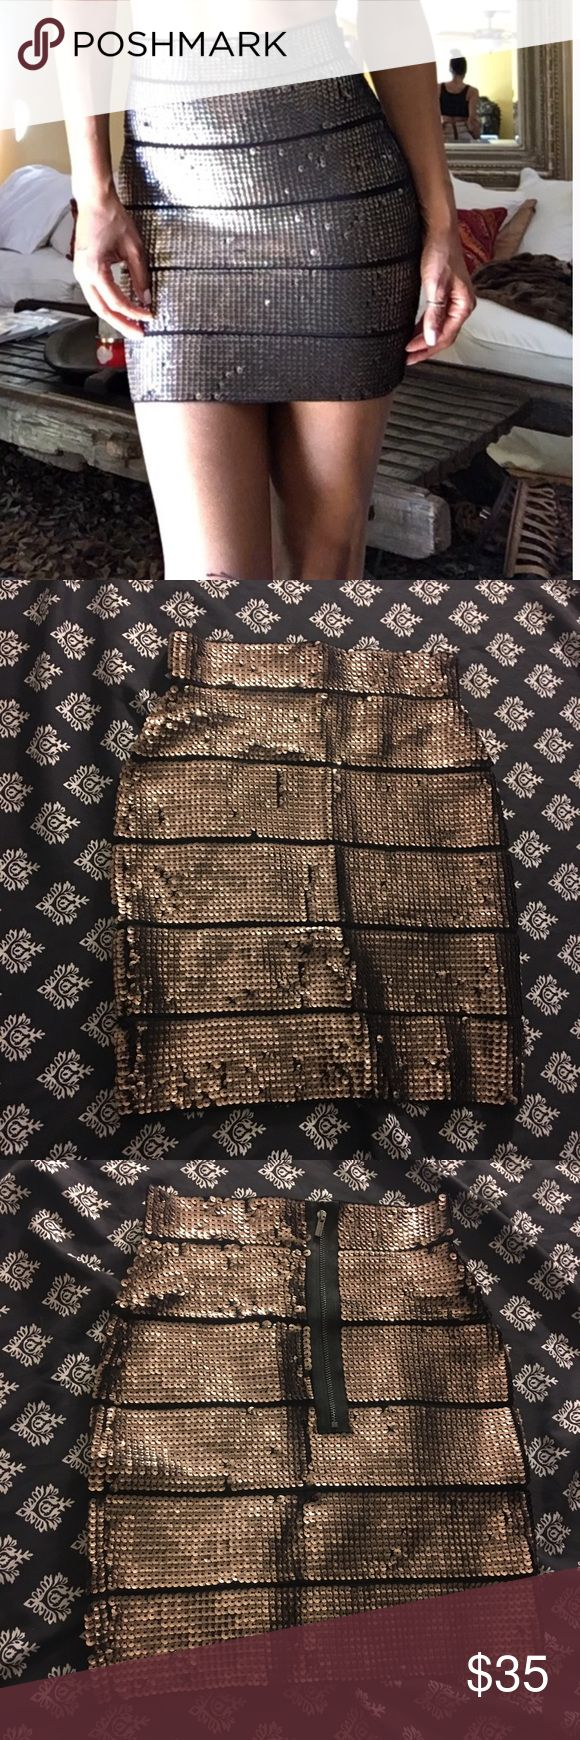 Gold and black Sequin skirt Body contouring skirt .... IM MOVING I NEED TO GET RID OF ALOT OF MY CLOTHES!!! ITS PRICED SO LOW SO I CAN SELL THEM QUICKLY!!! BCBG Skirts